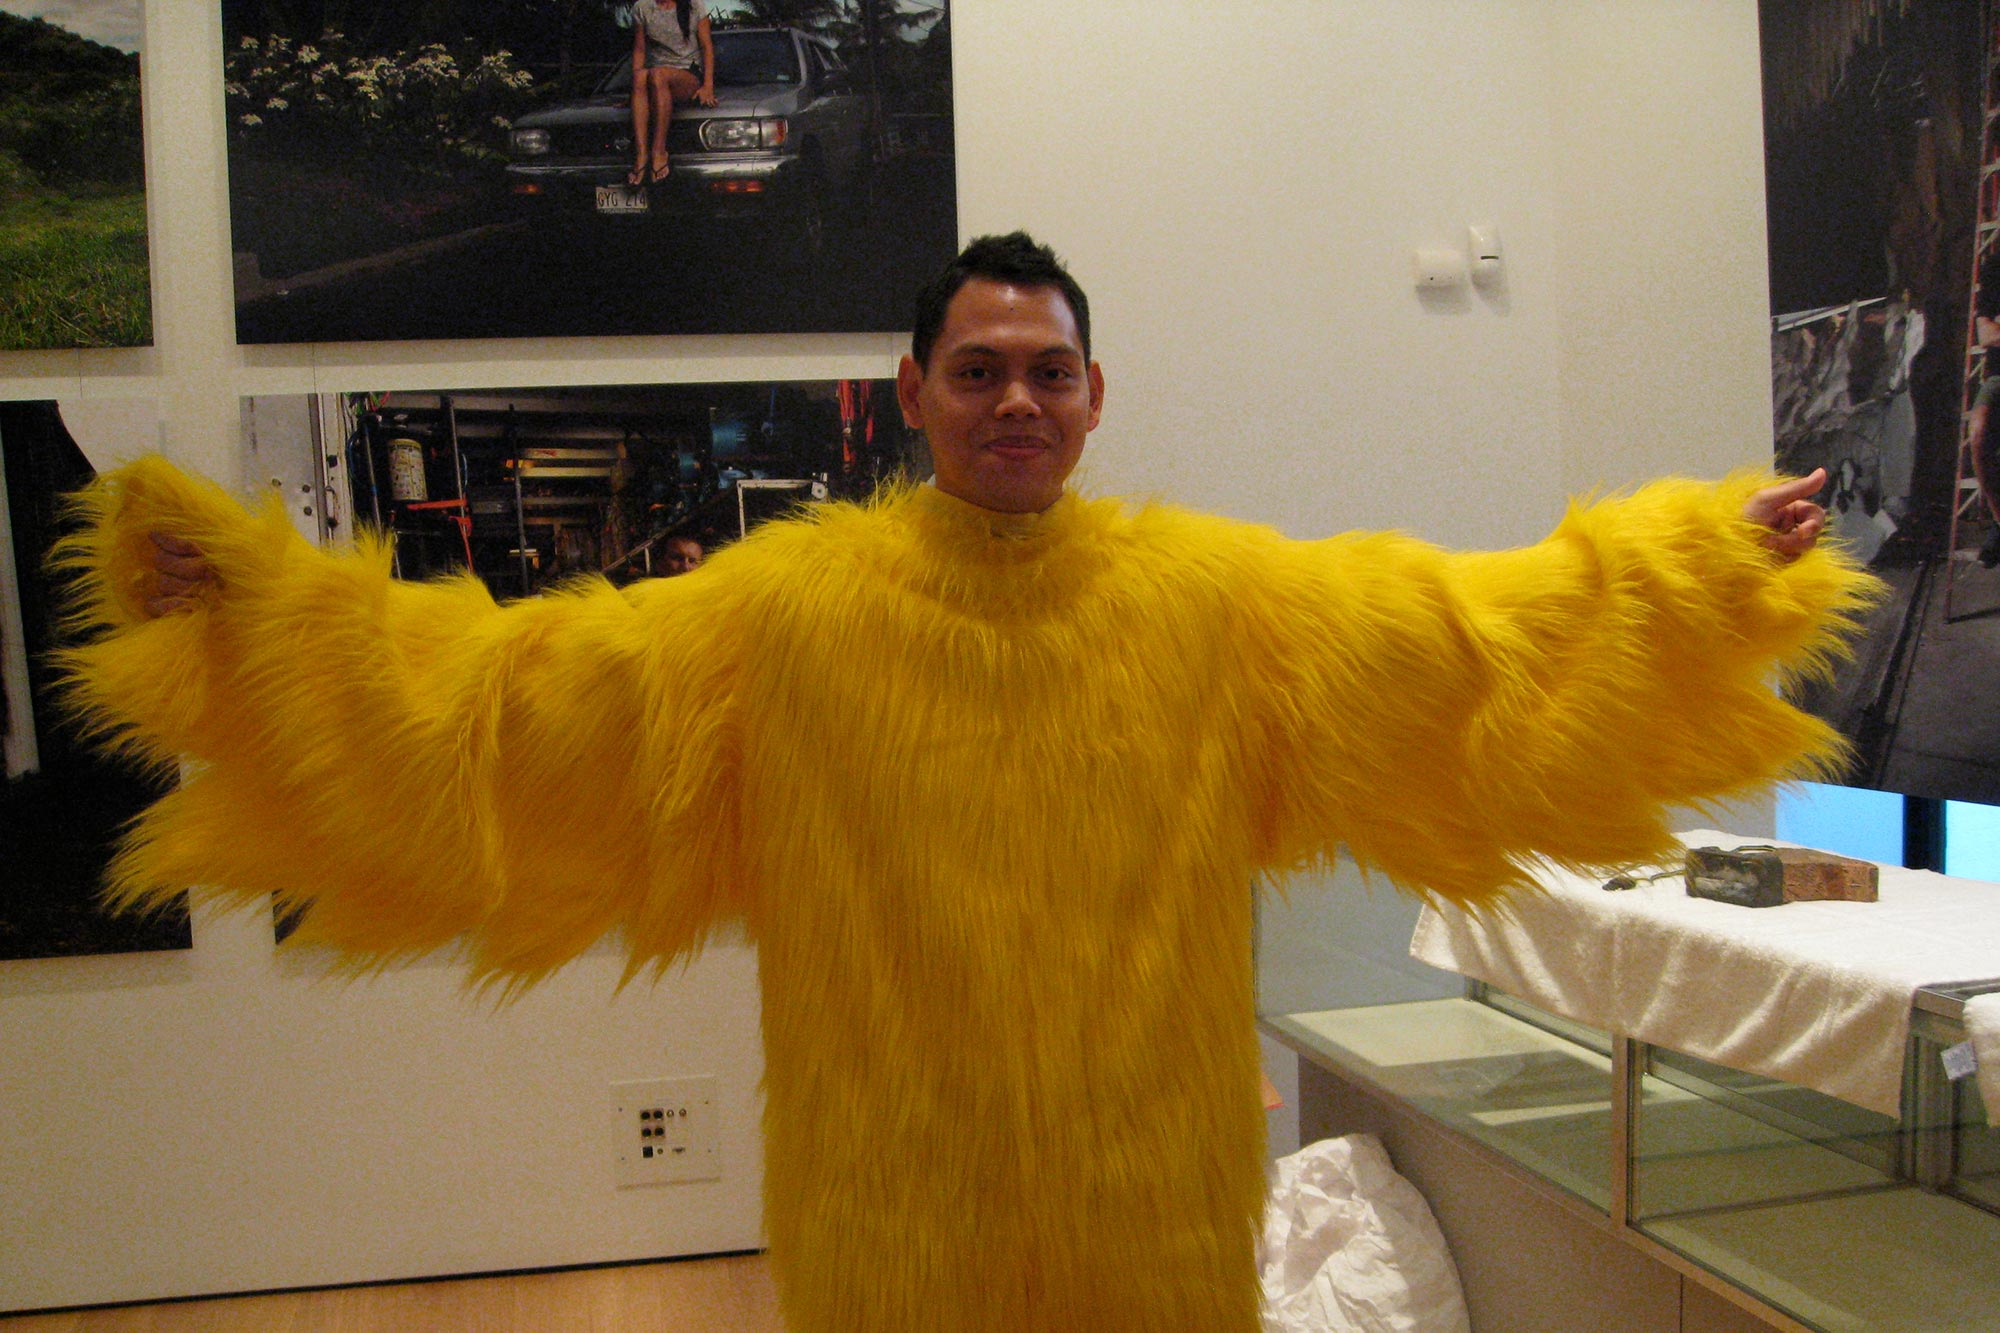 Ronnie Mewngkang wearing a chicken costume from the hit TV show LOST.